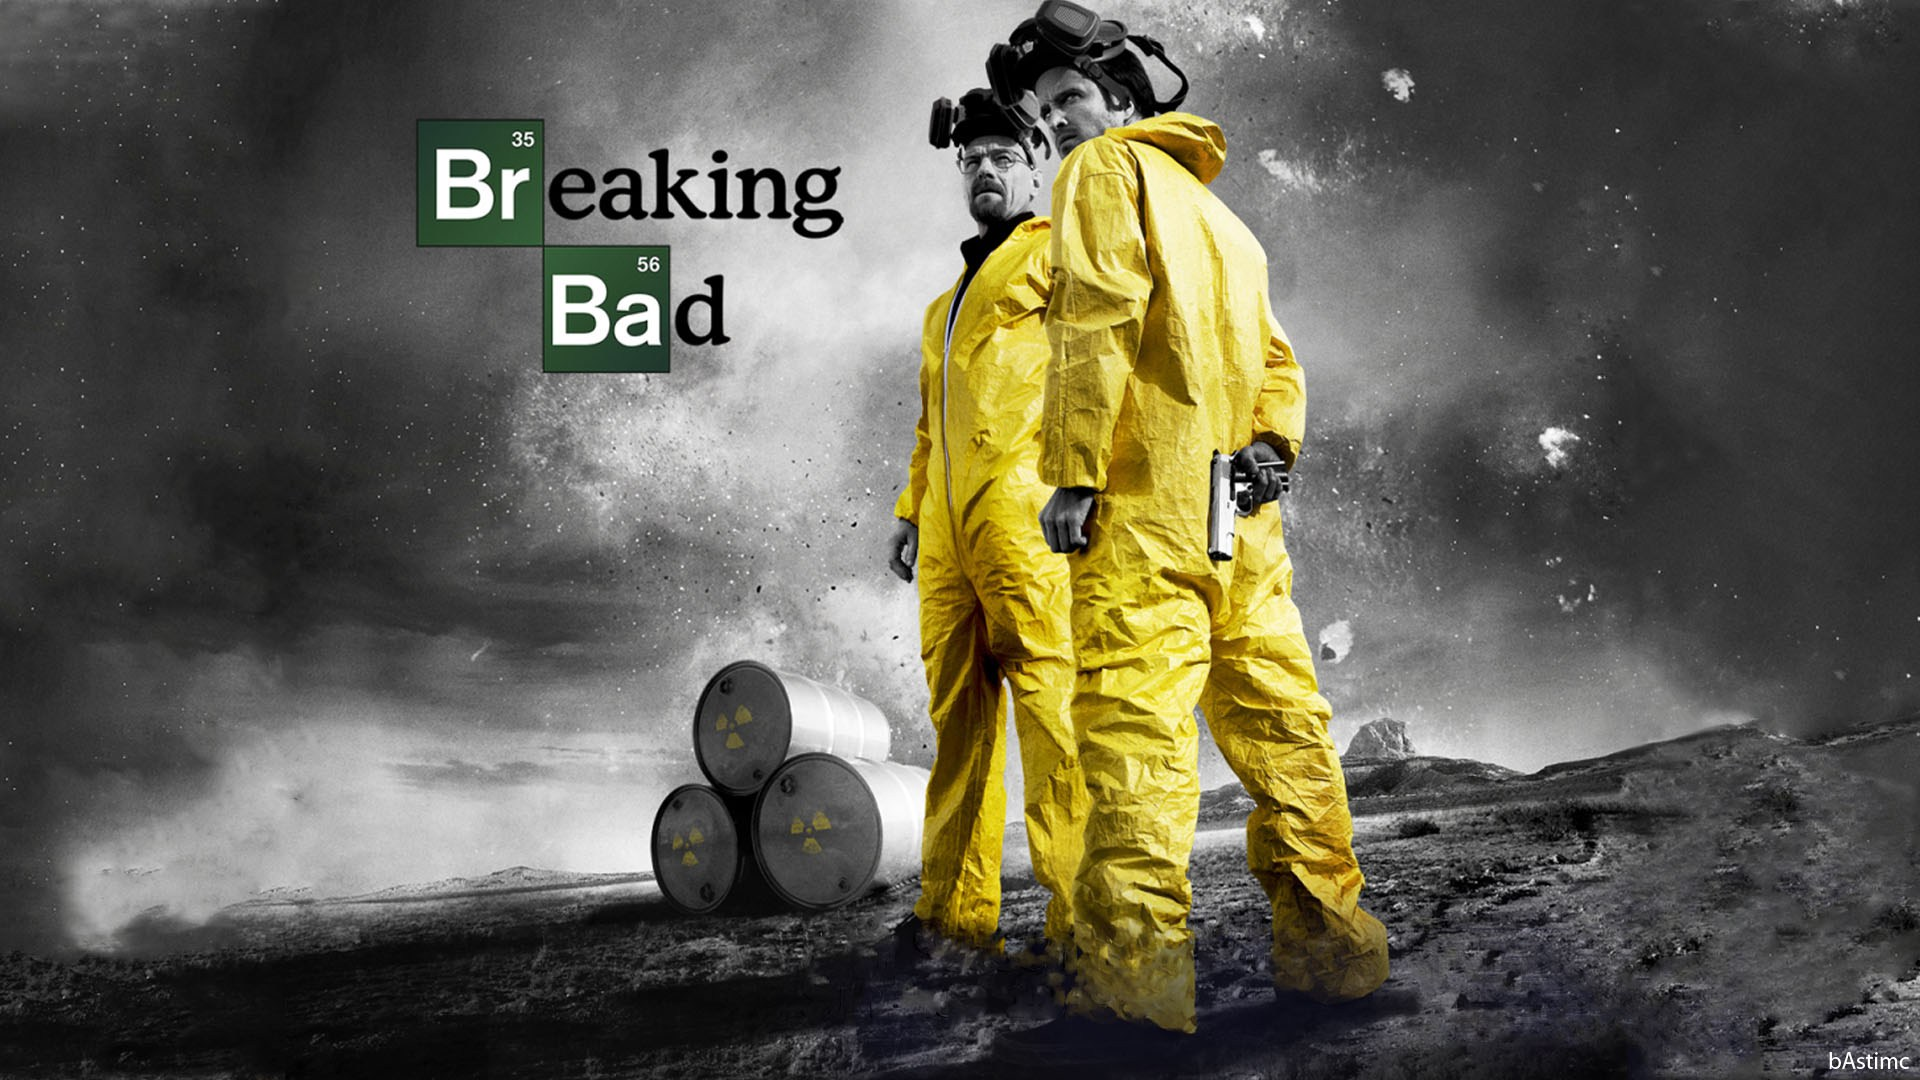 Breaking-Bad-by-bAstimc-1920%C3%971080-wallpaper-wpc9003188